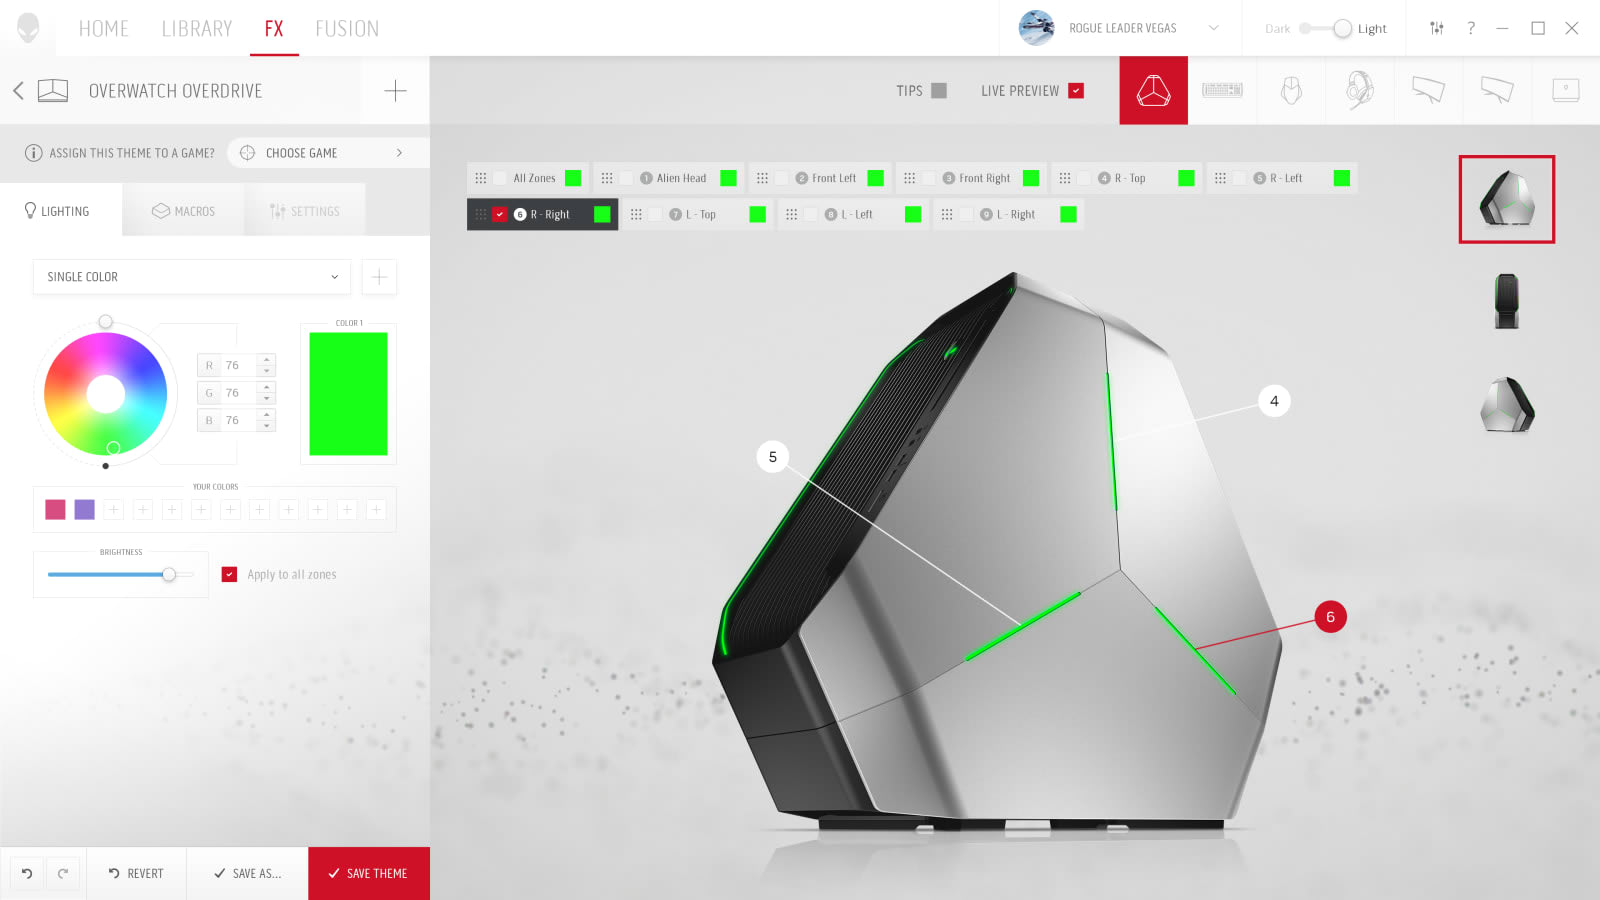 Alienware's control hub redesign folds in your game library